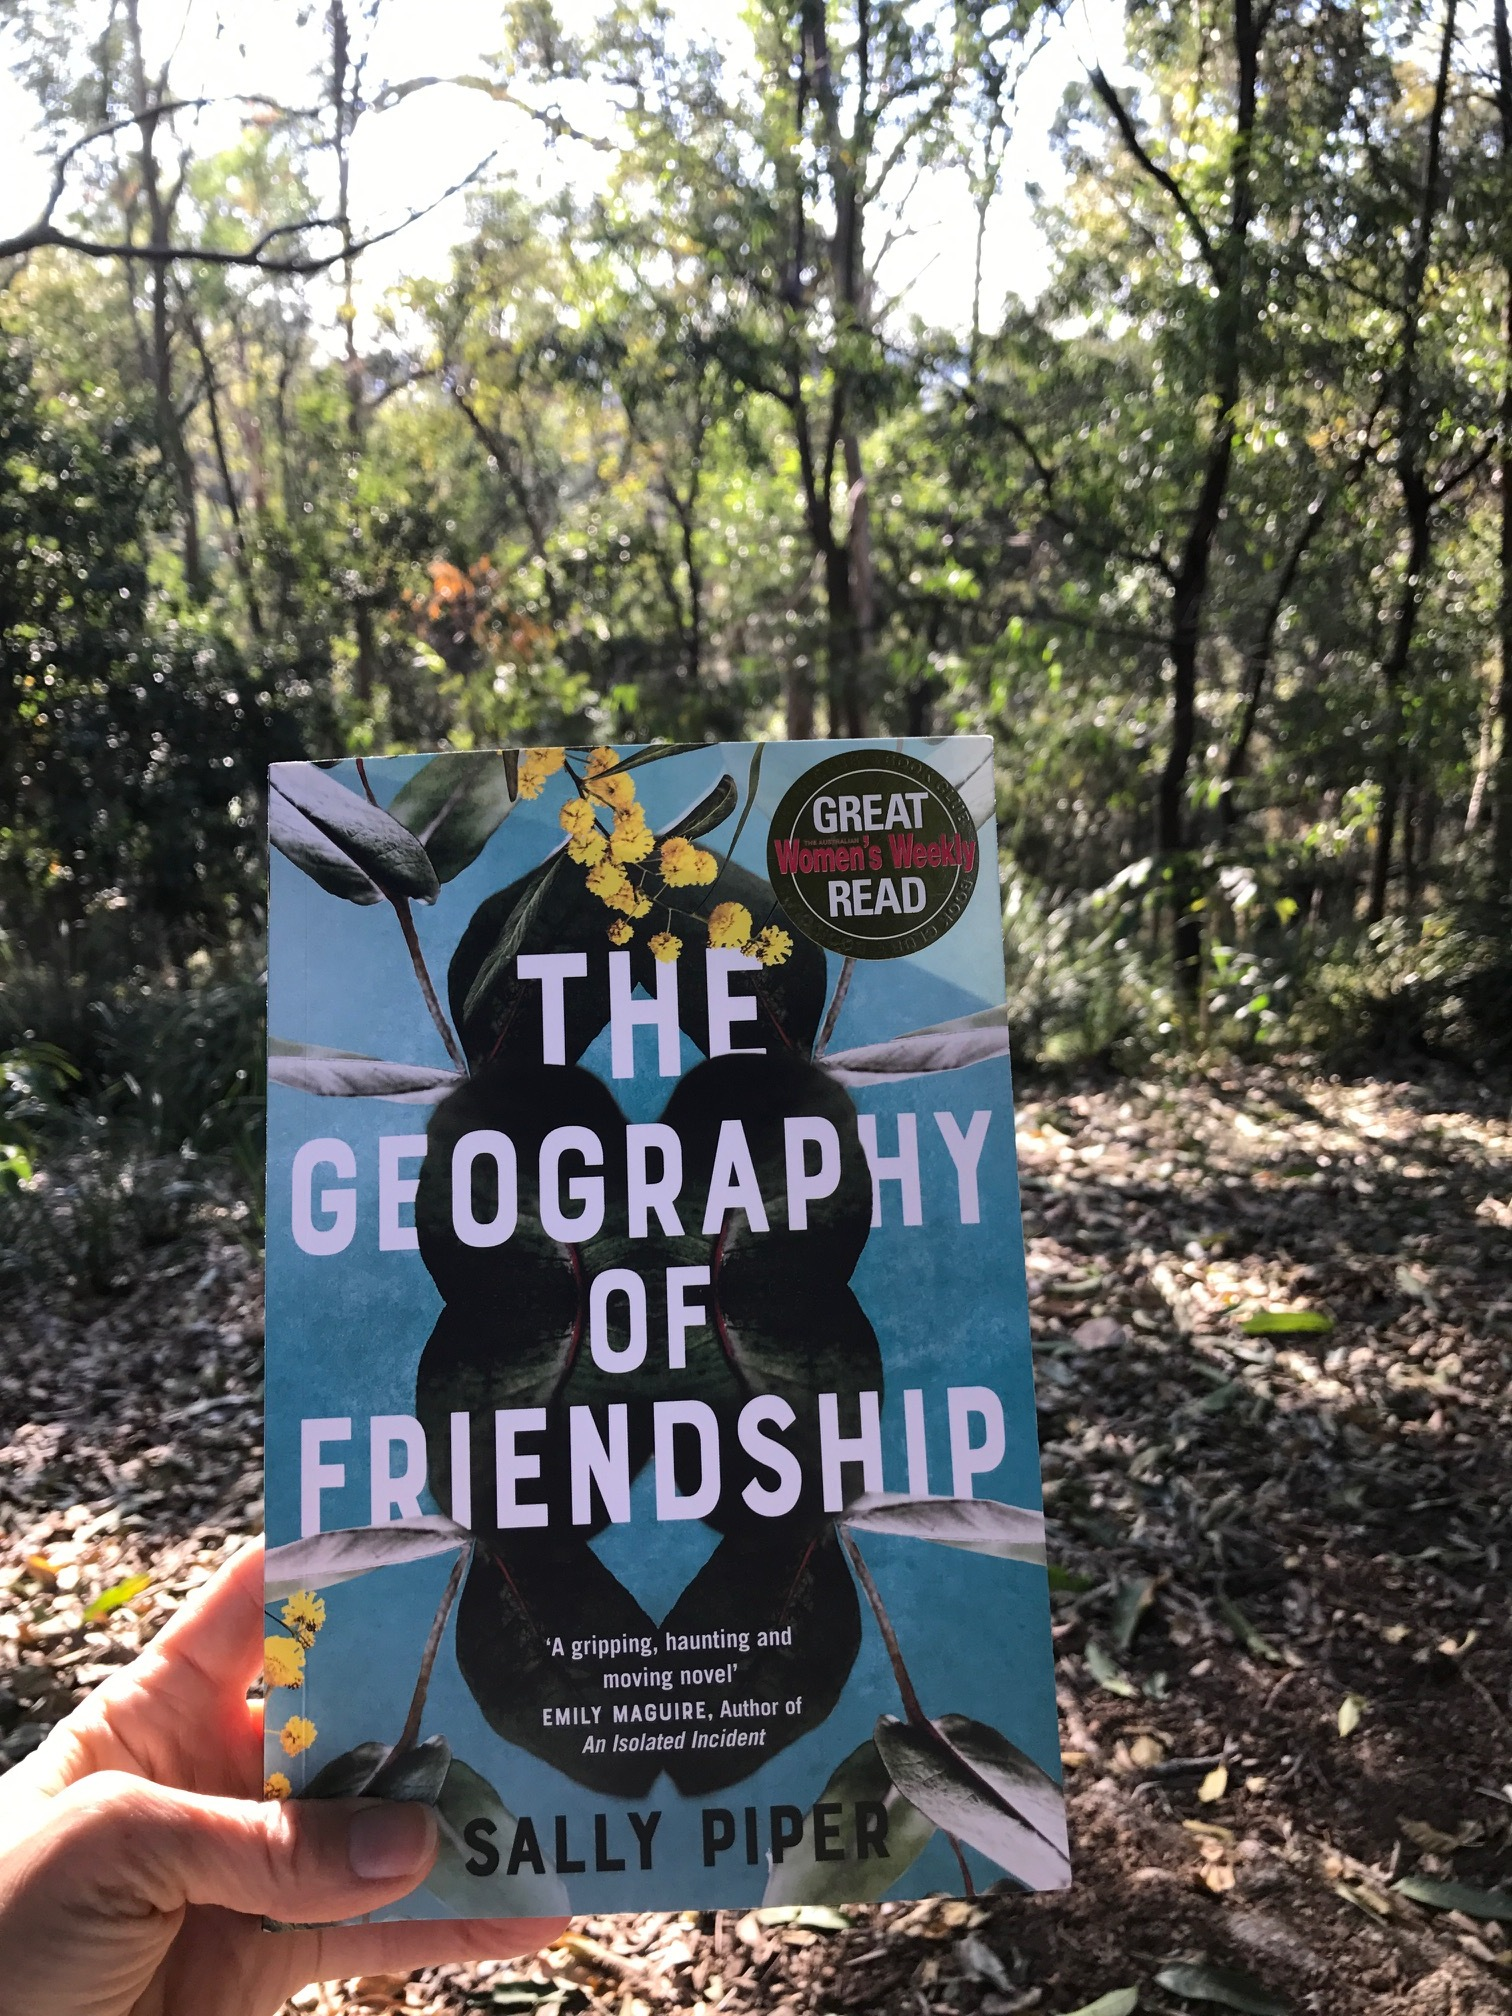 Sally Piper's 'The Geography of Friendship' is a claustrophobic read concerning toxic masculinity and its impacts on women